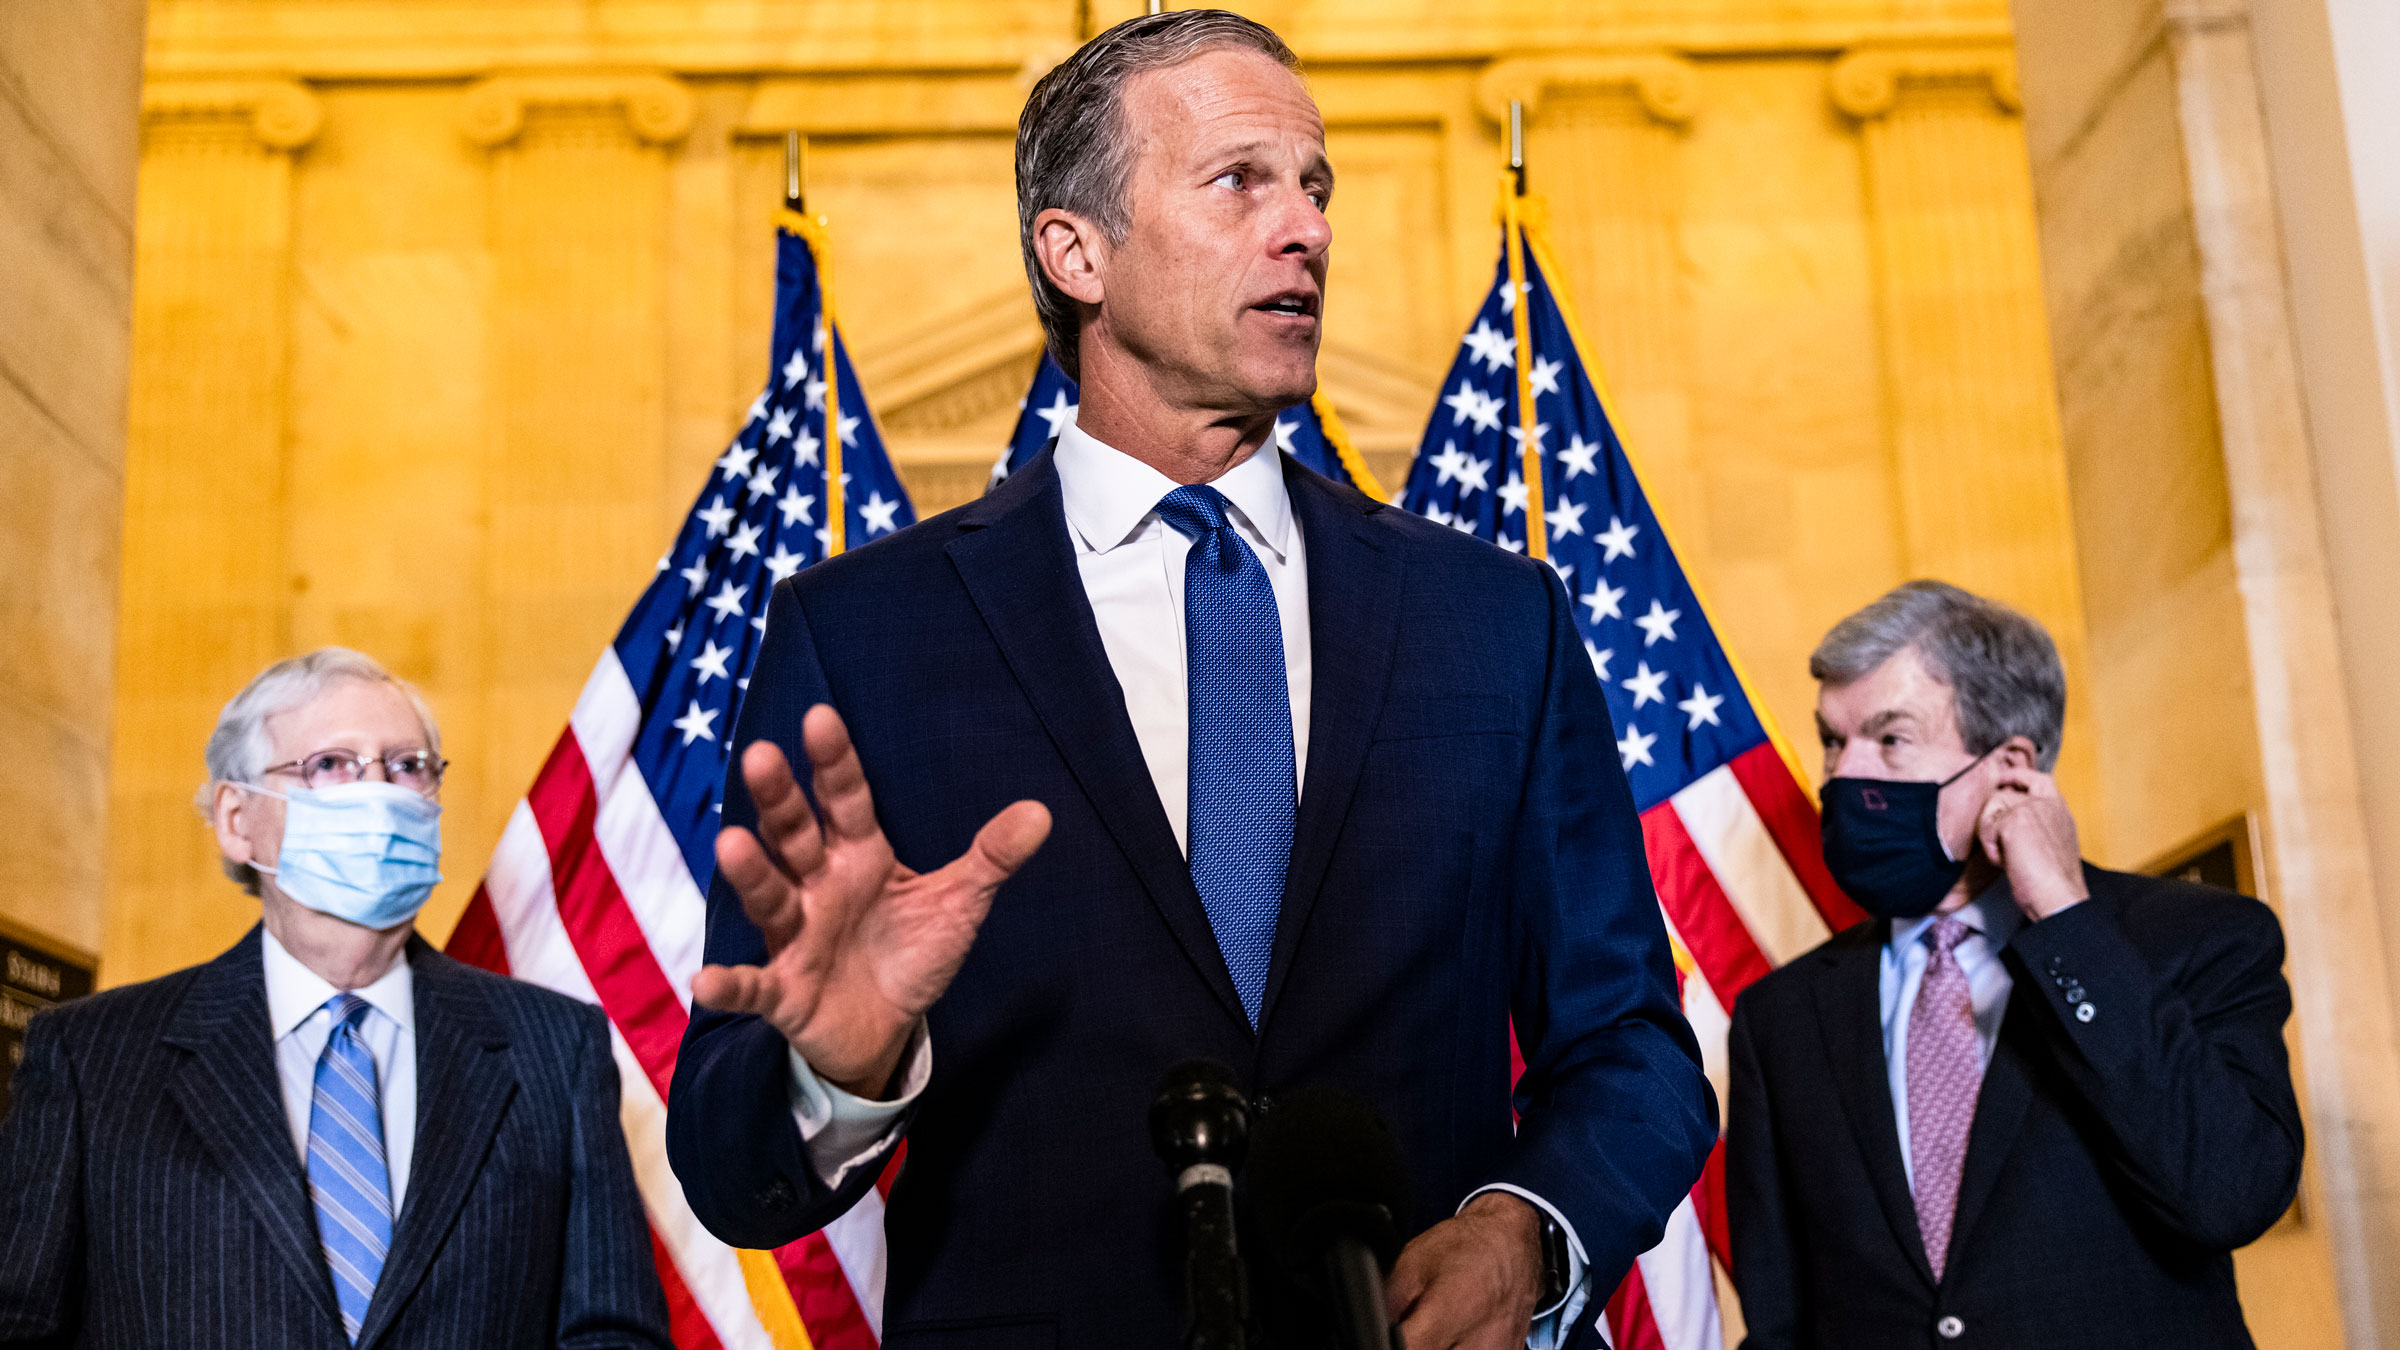 Senate Minority Whip John Thune is flanked by Senate Minority Leader Mitch McConnell, left, and US Sen. Roy Blunt during a news conference on Tuesday.